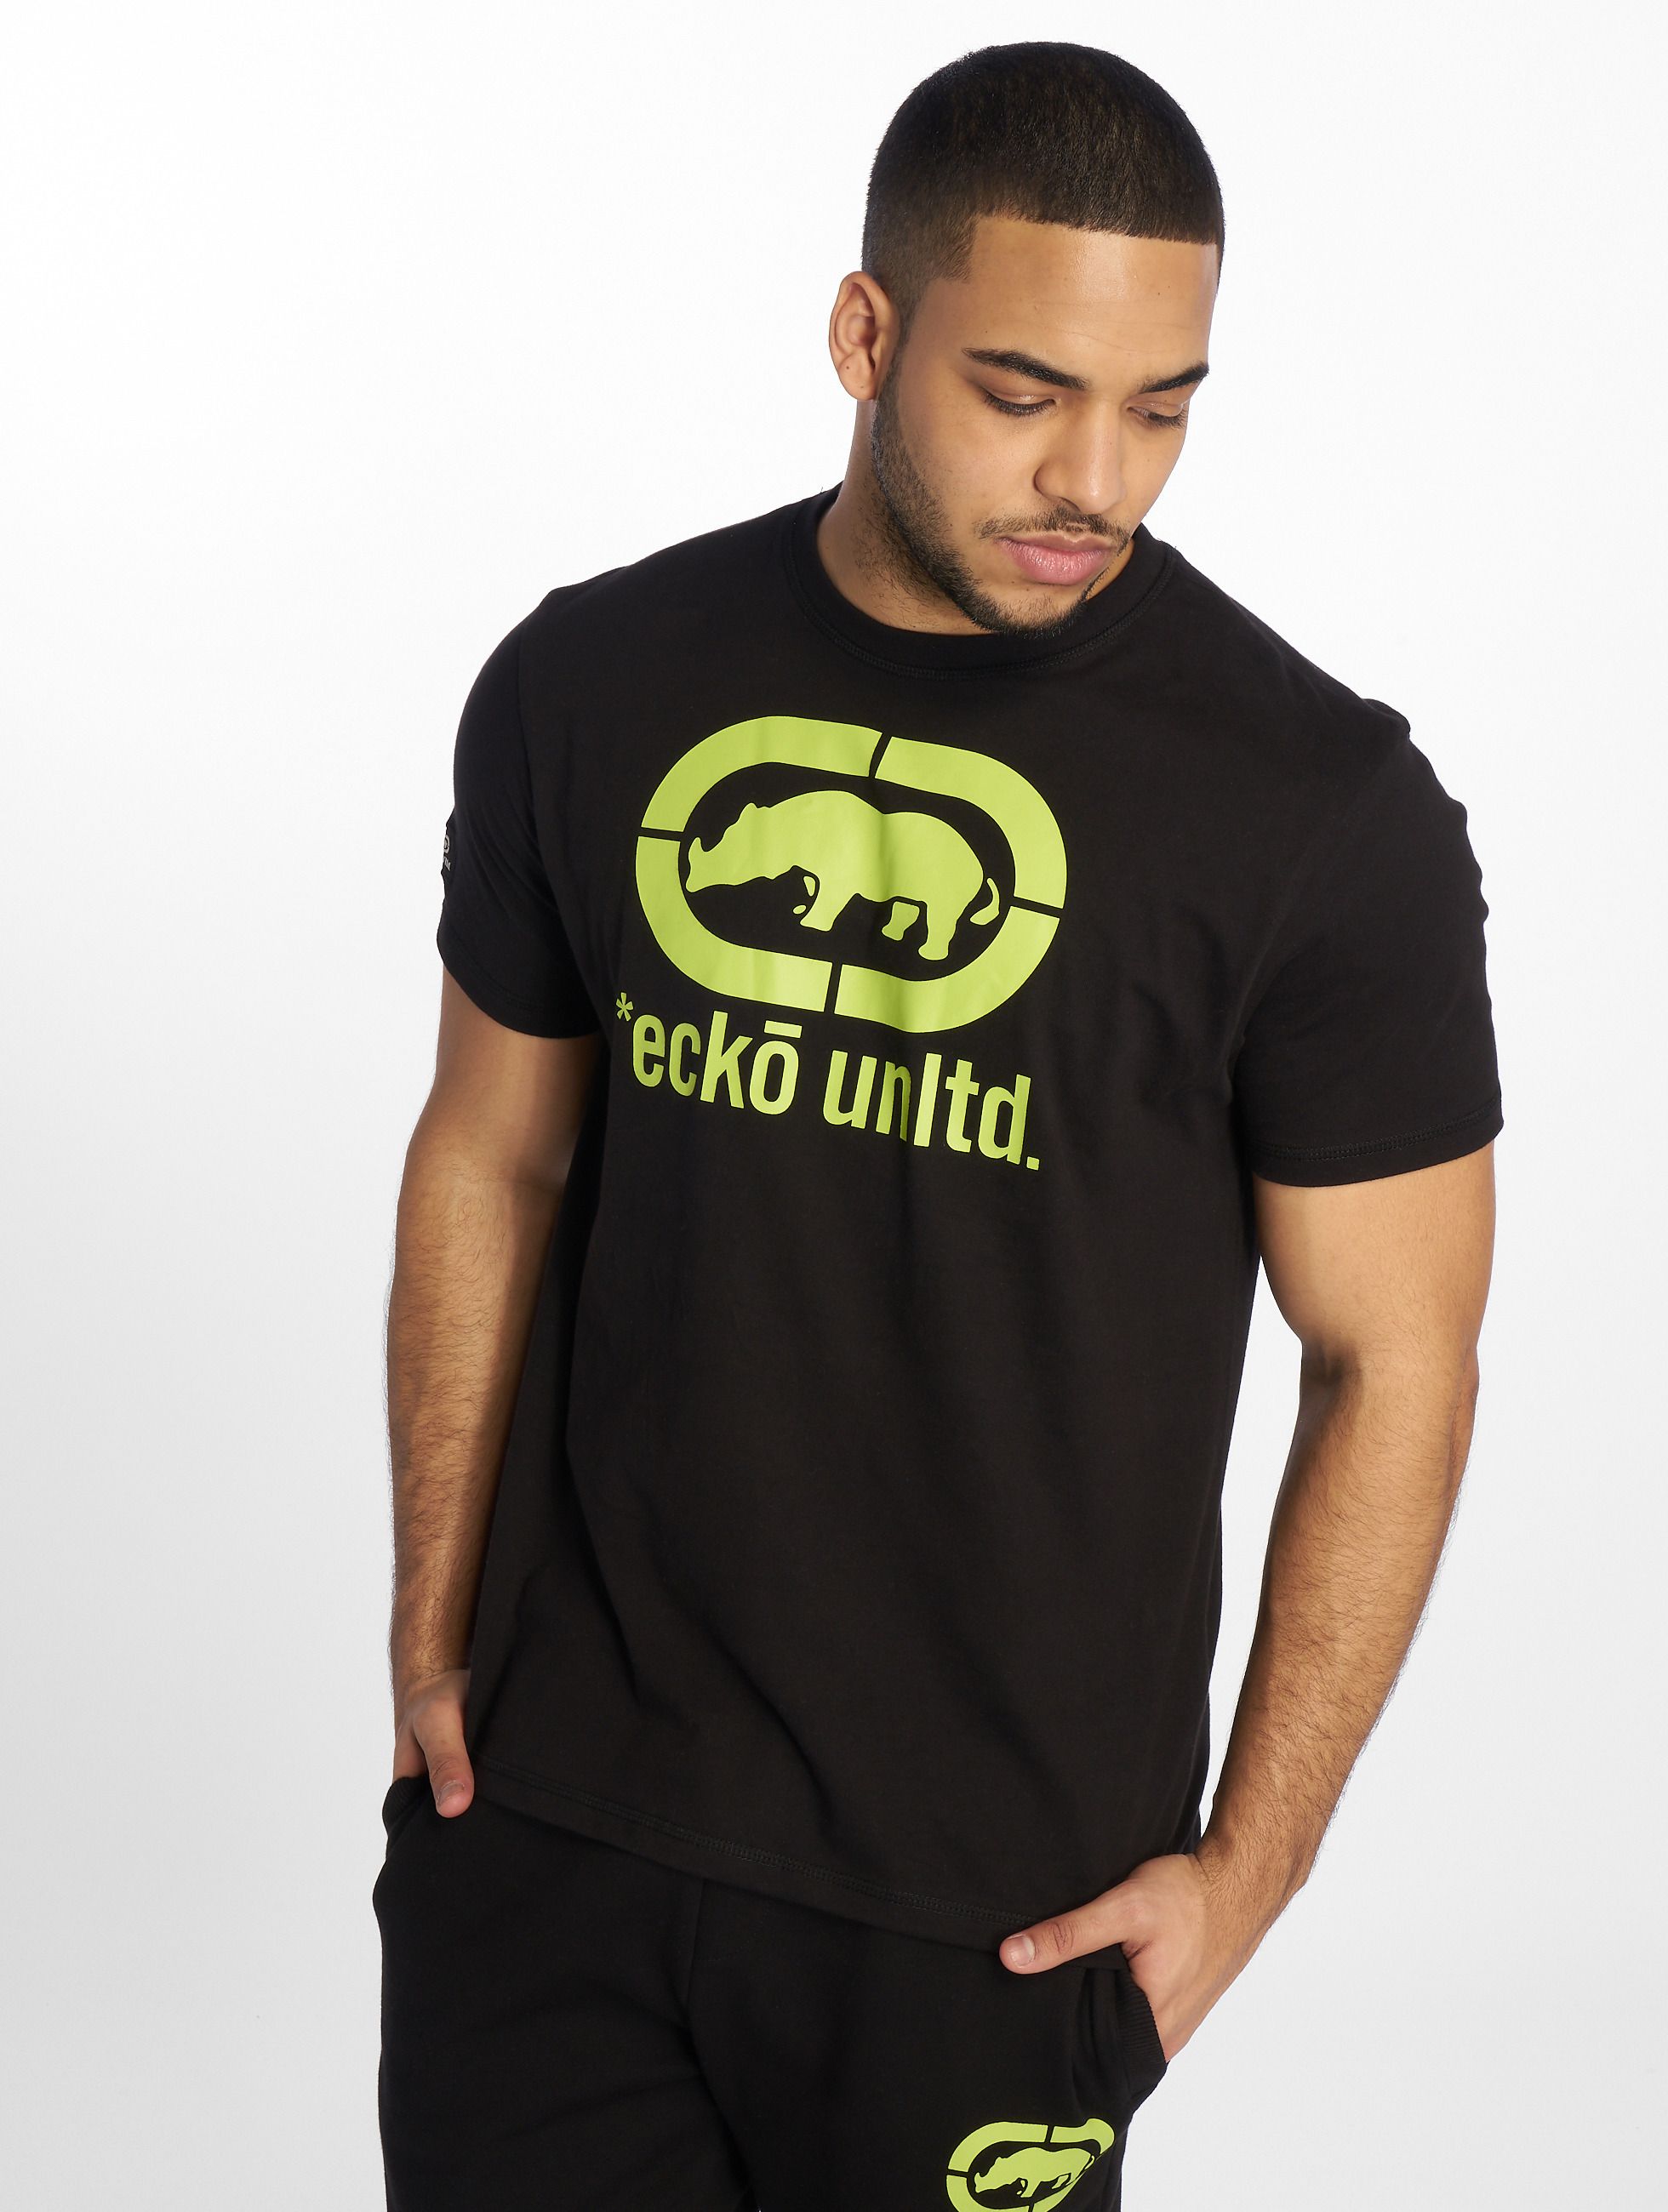 Ecko Unltd. / T-Shirt John Rhino in black 2XL